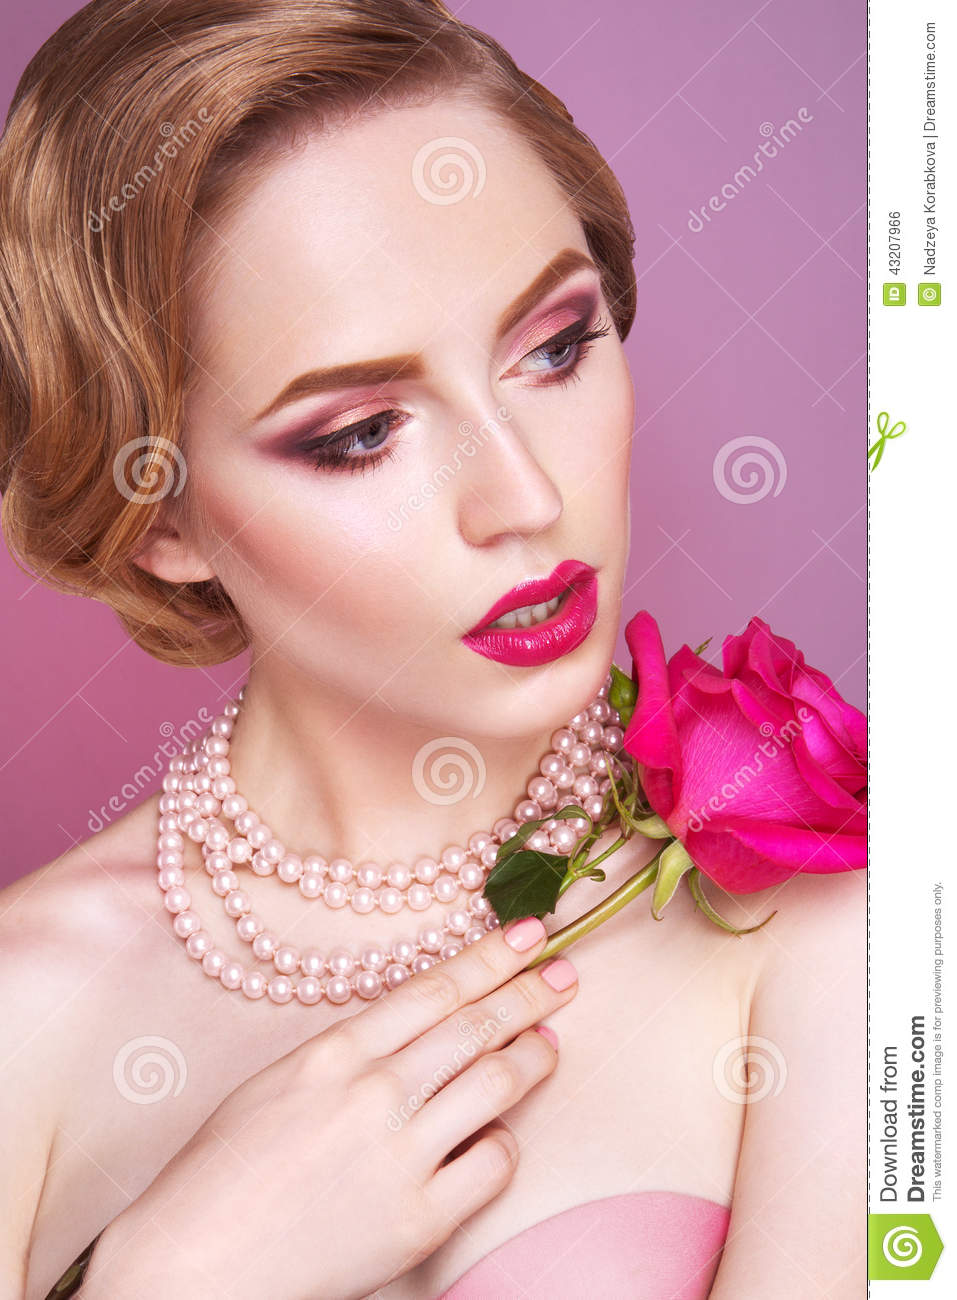 Download Ladypinken steg arkivfoto. Bild av lady, modell, läppstift - 43207966